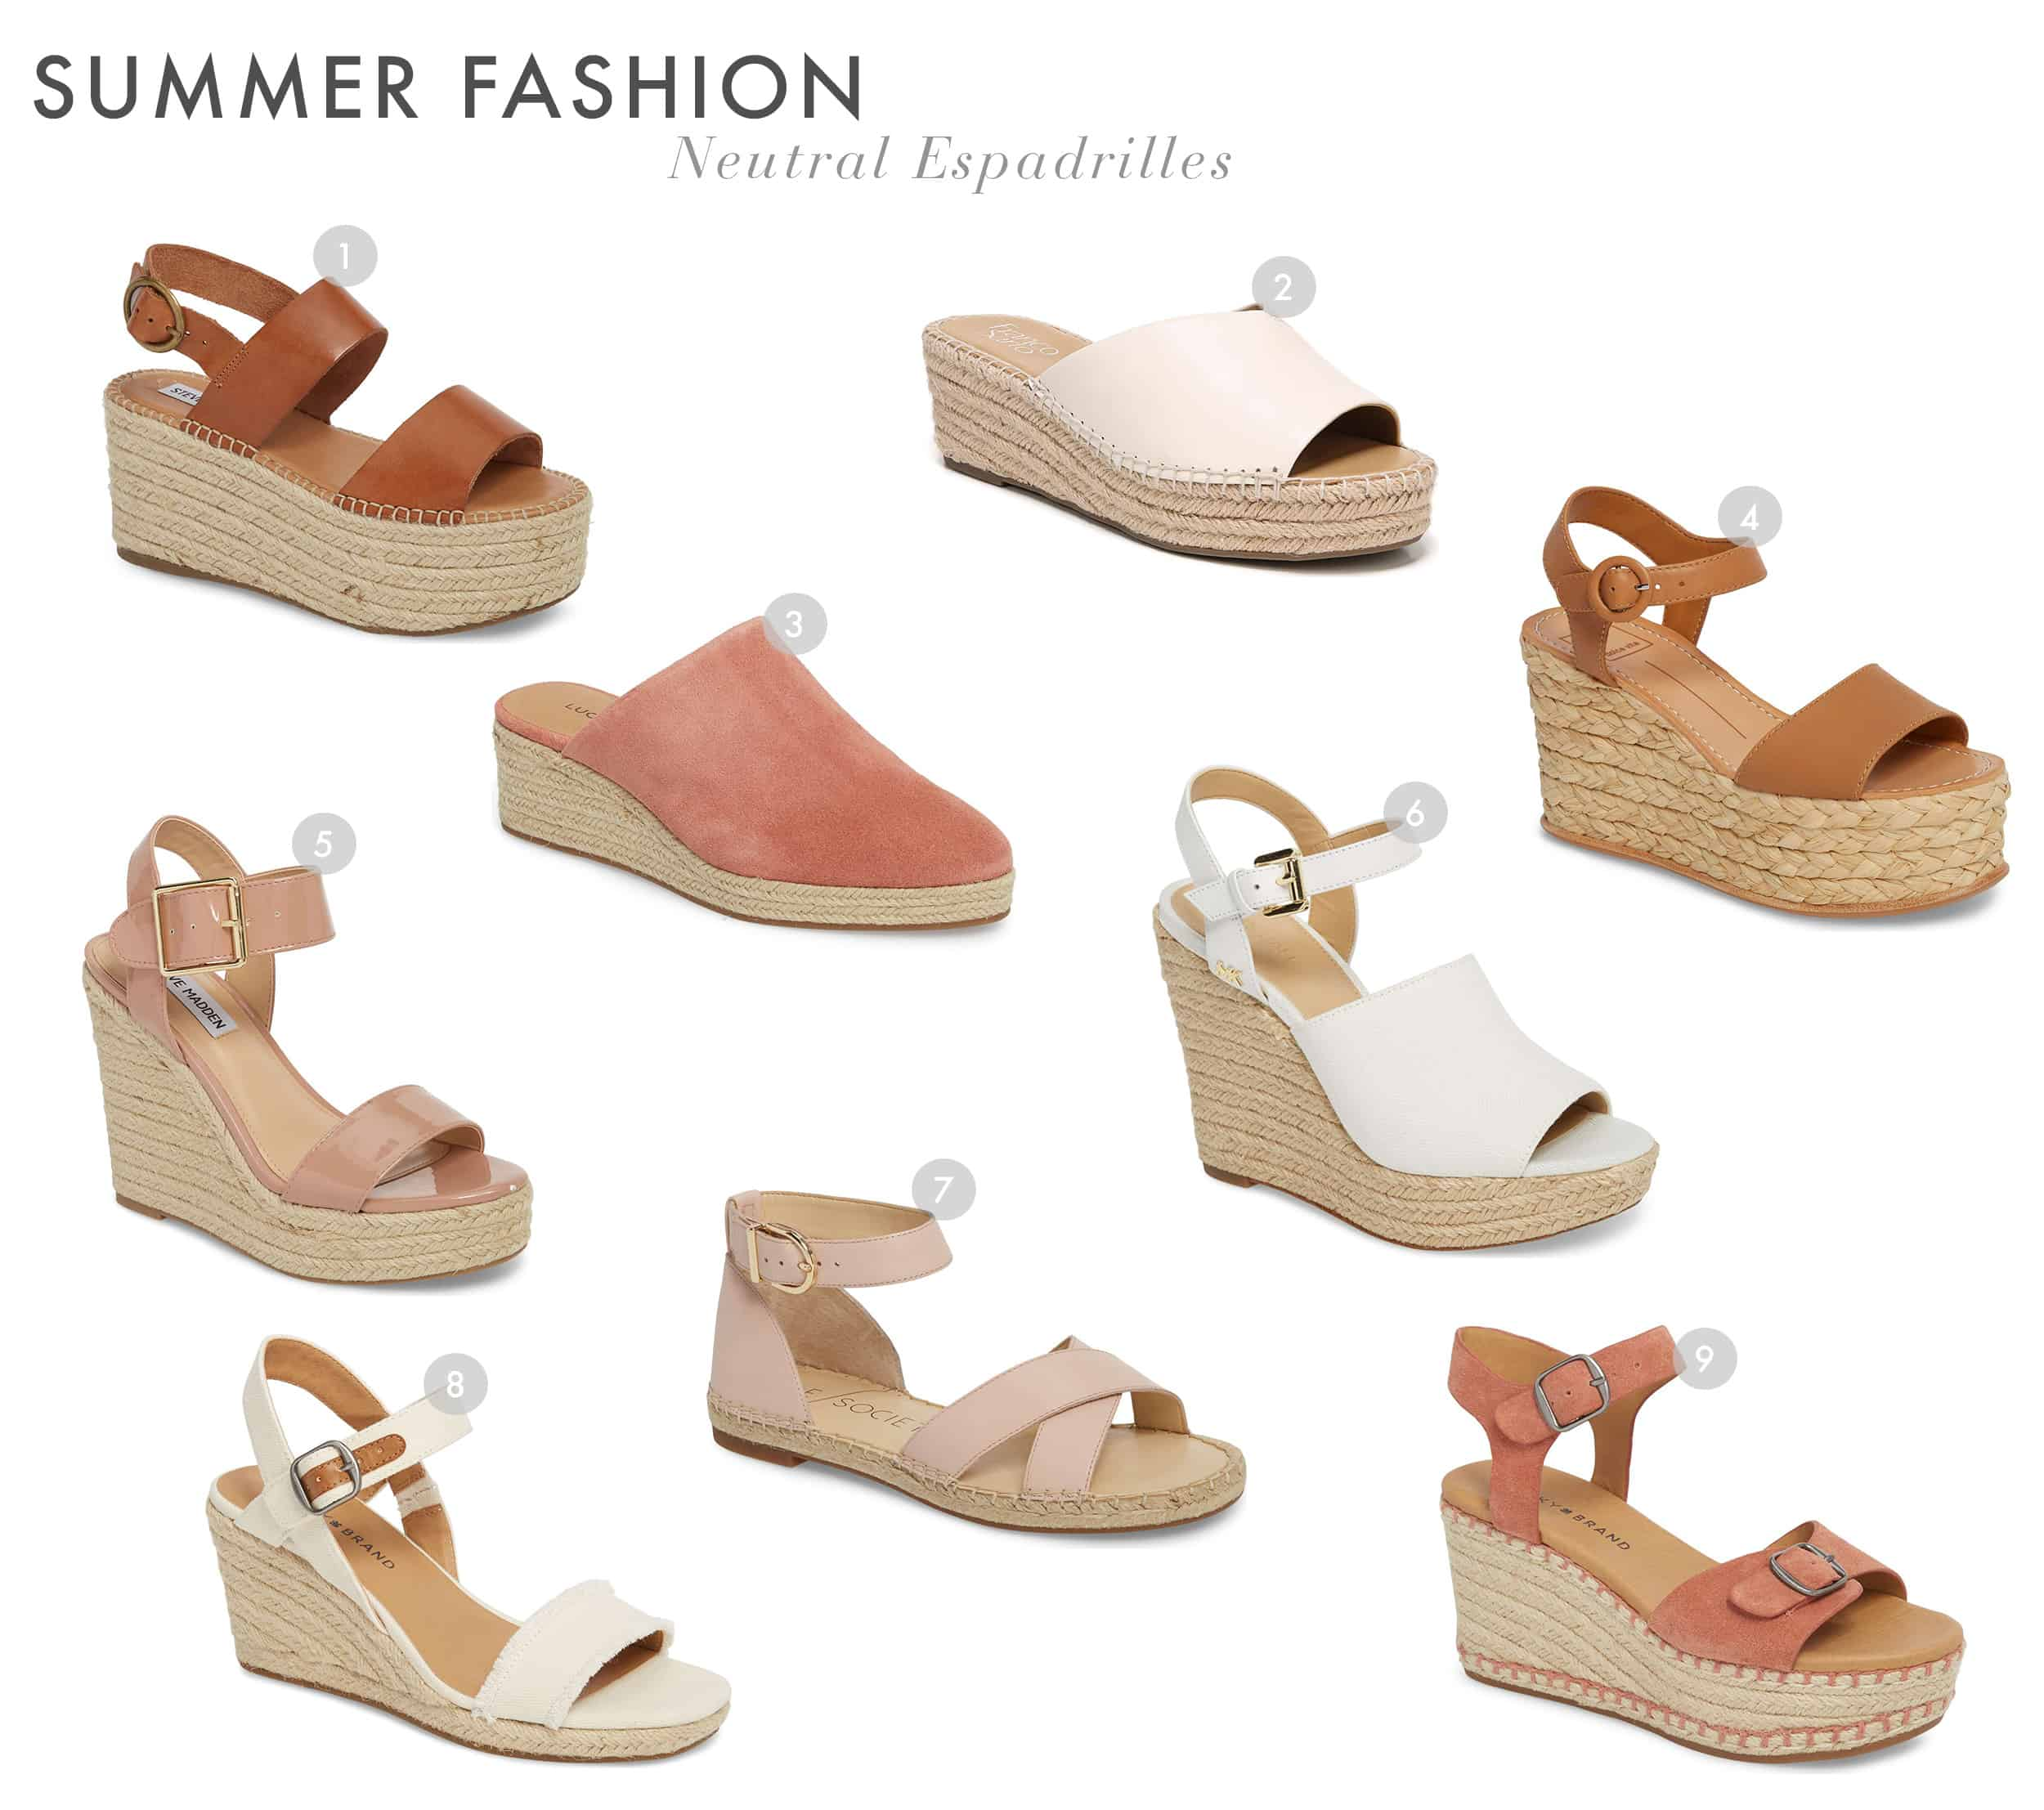 Emily Henderson Summer Fashion 2018 Neutral Shoes Espadrilles New 11